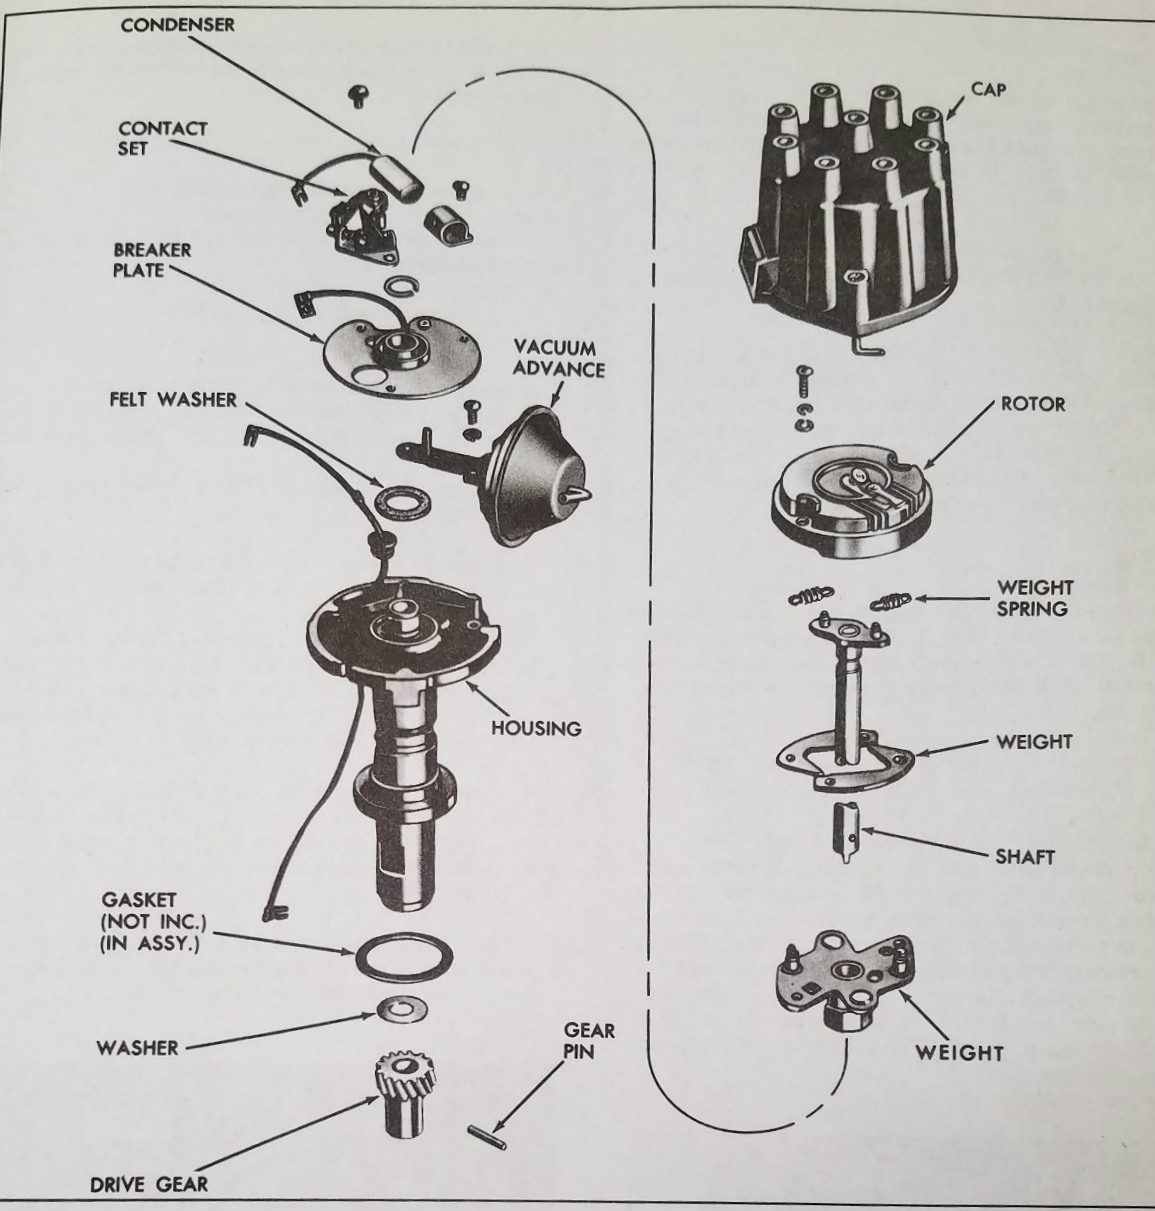 68goat.com - Ignition systems: what's the point?68goat.com - Blog Home